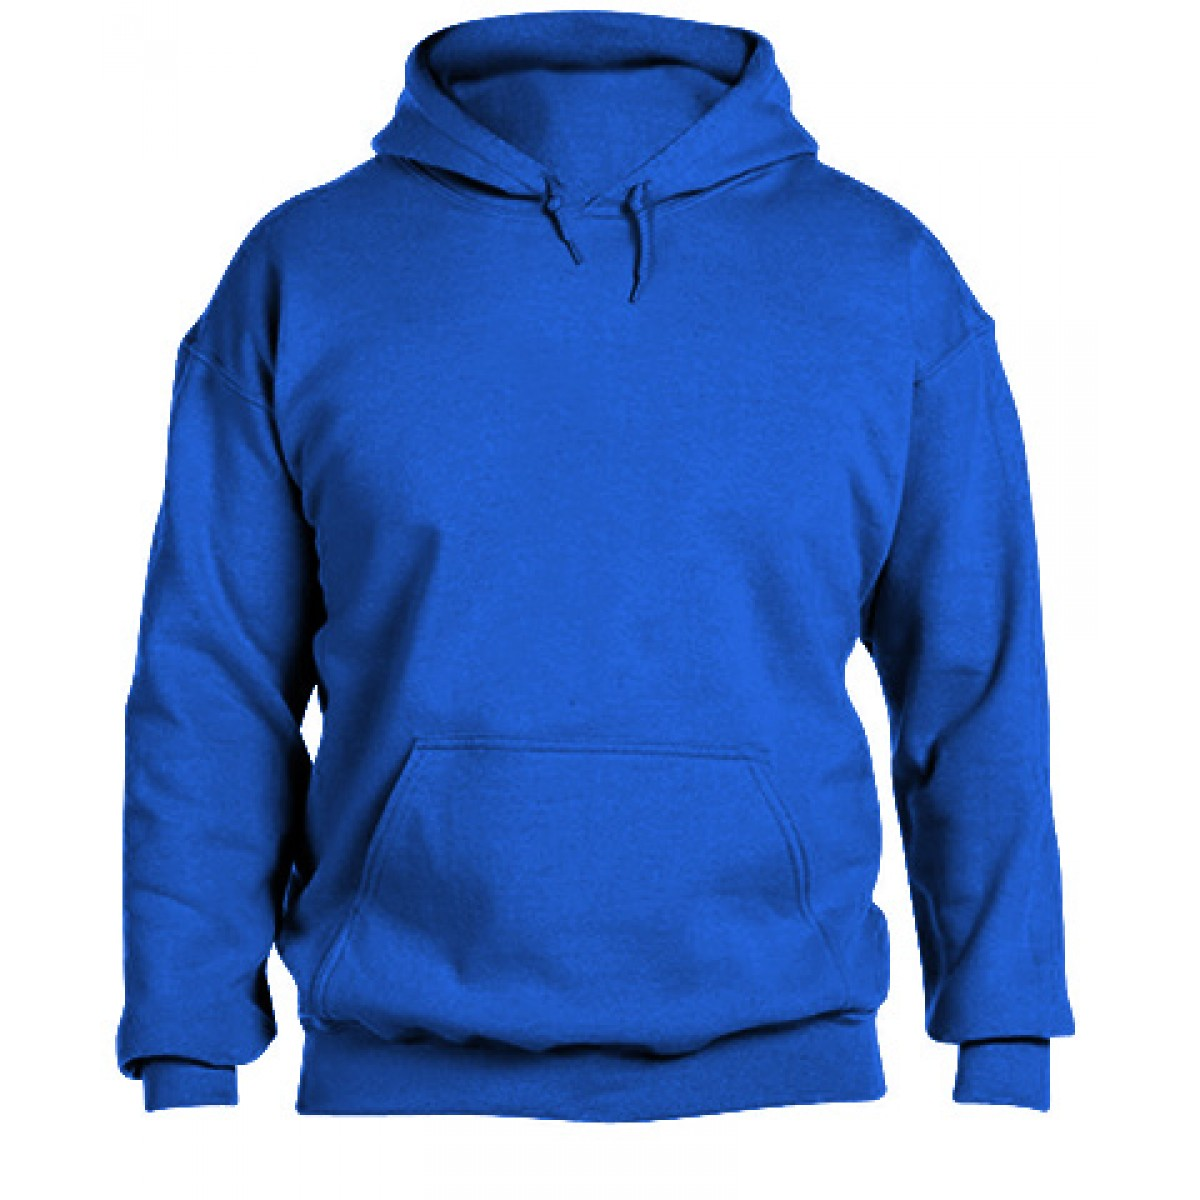 Hooded Sweatshirt 50/50 Heavy Blend-5XL